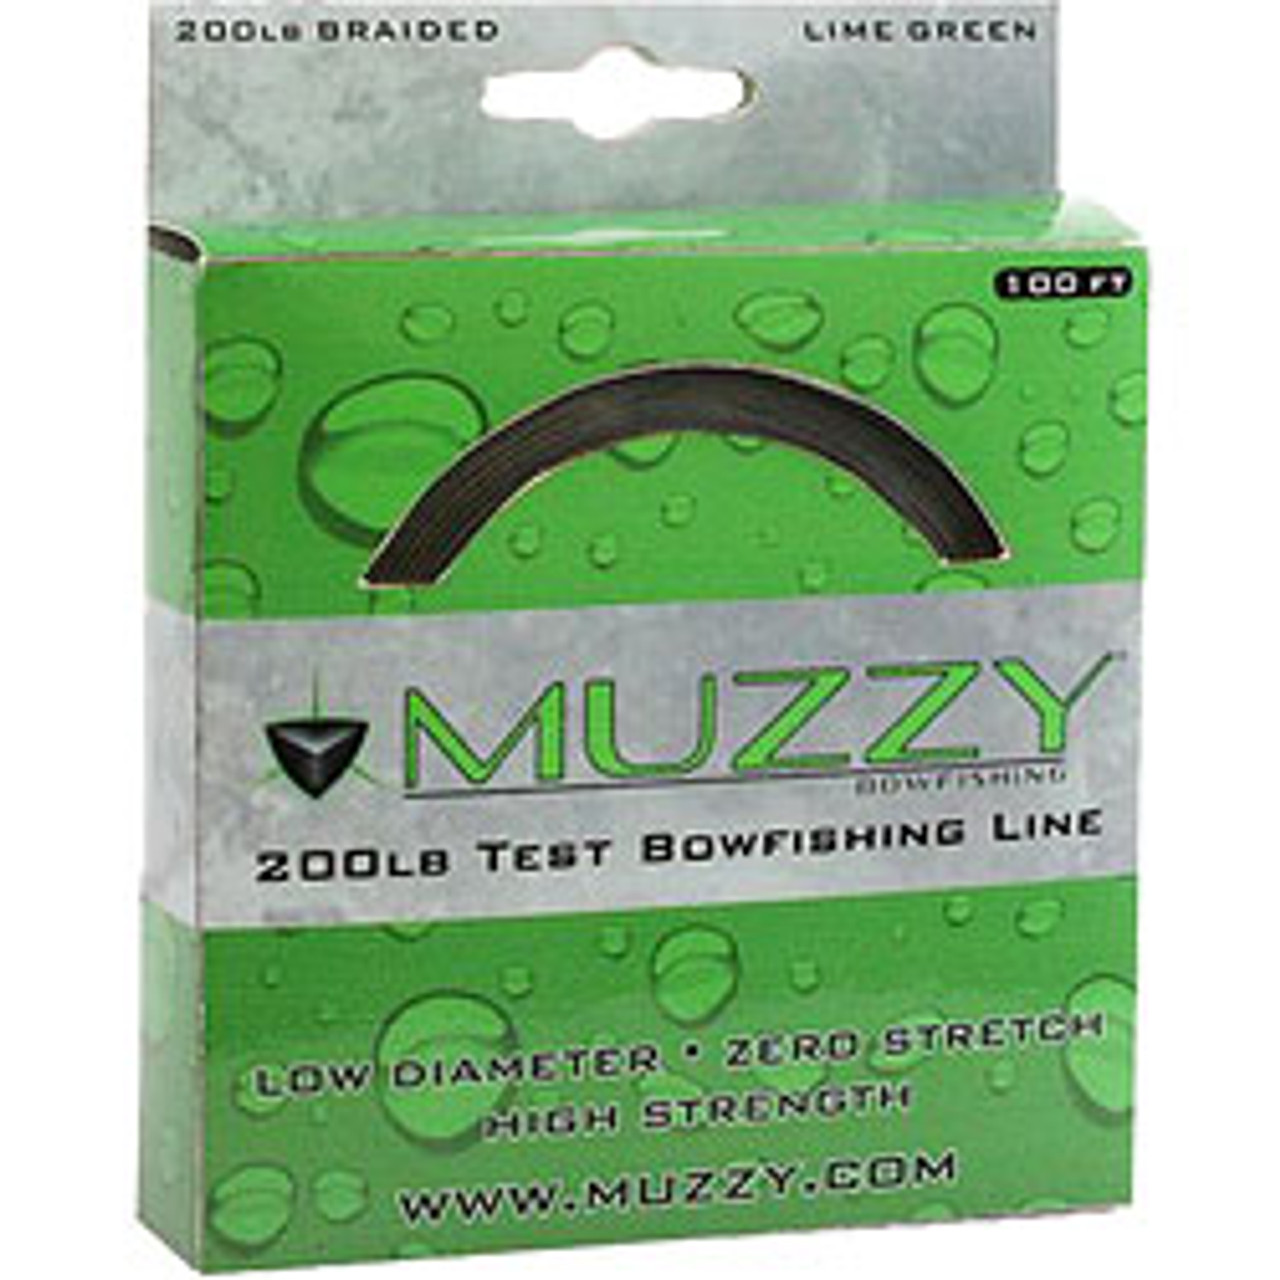 Braided Lime Green 200# Bowfishing Line by Muzzy